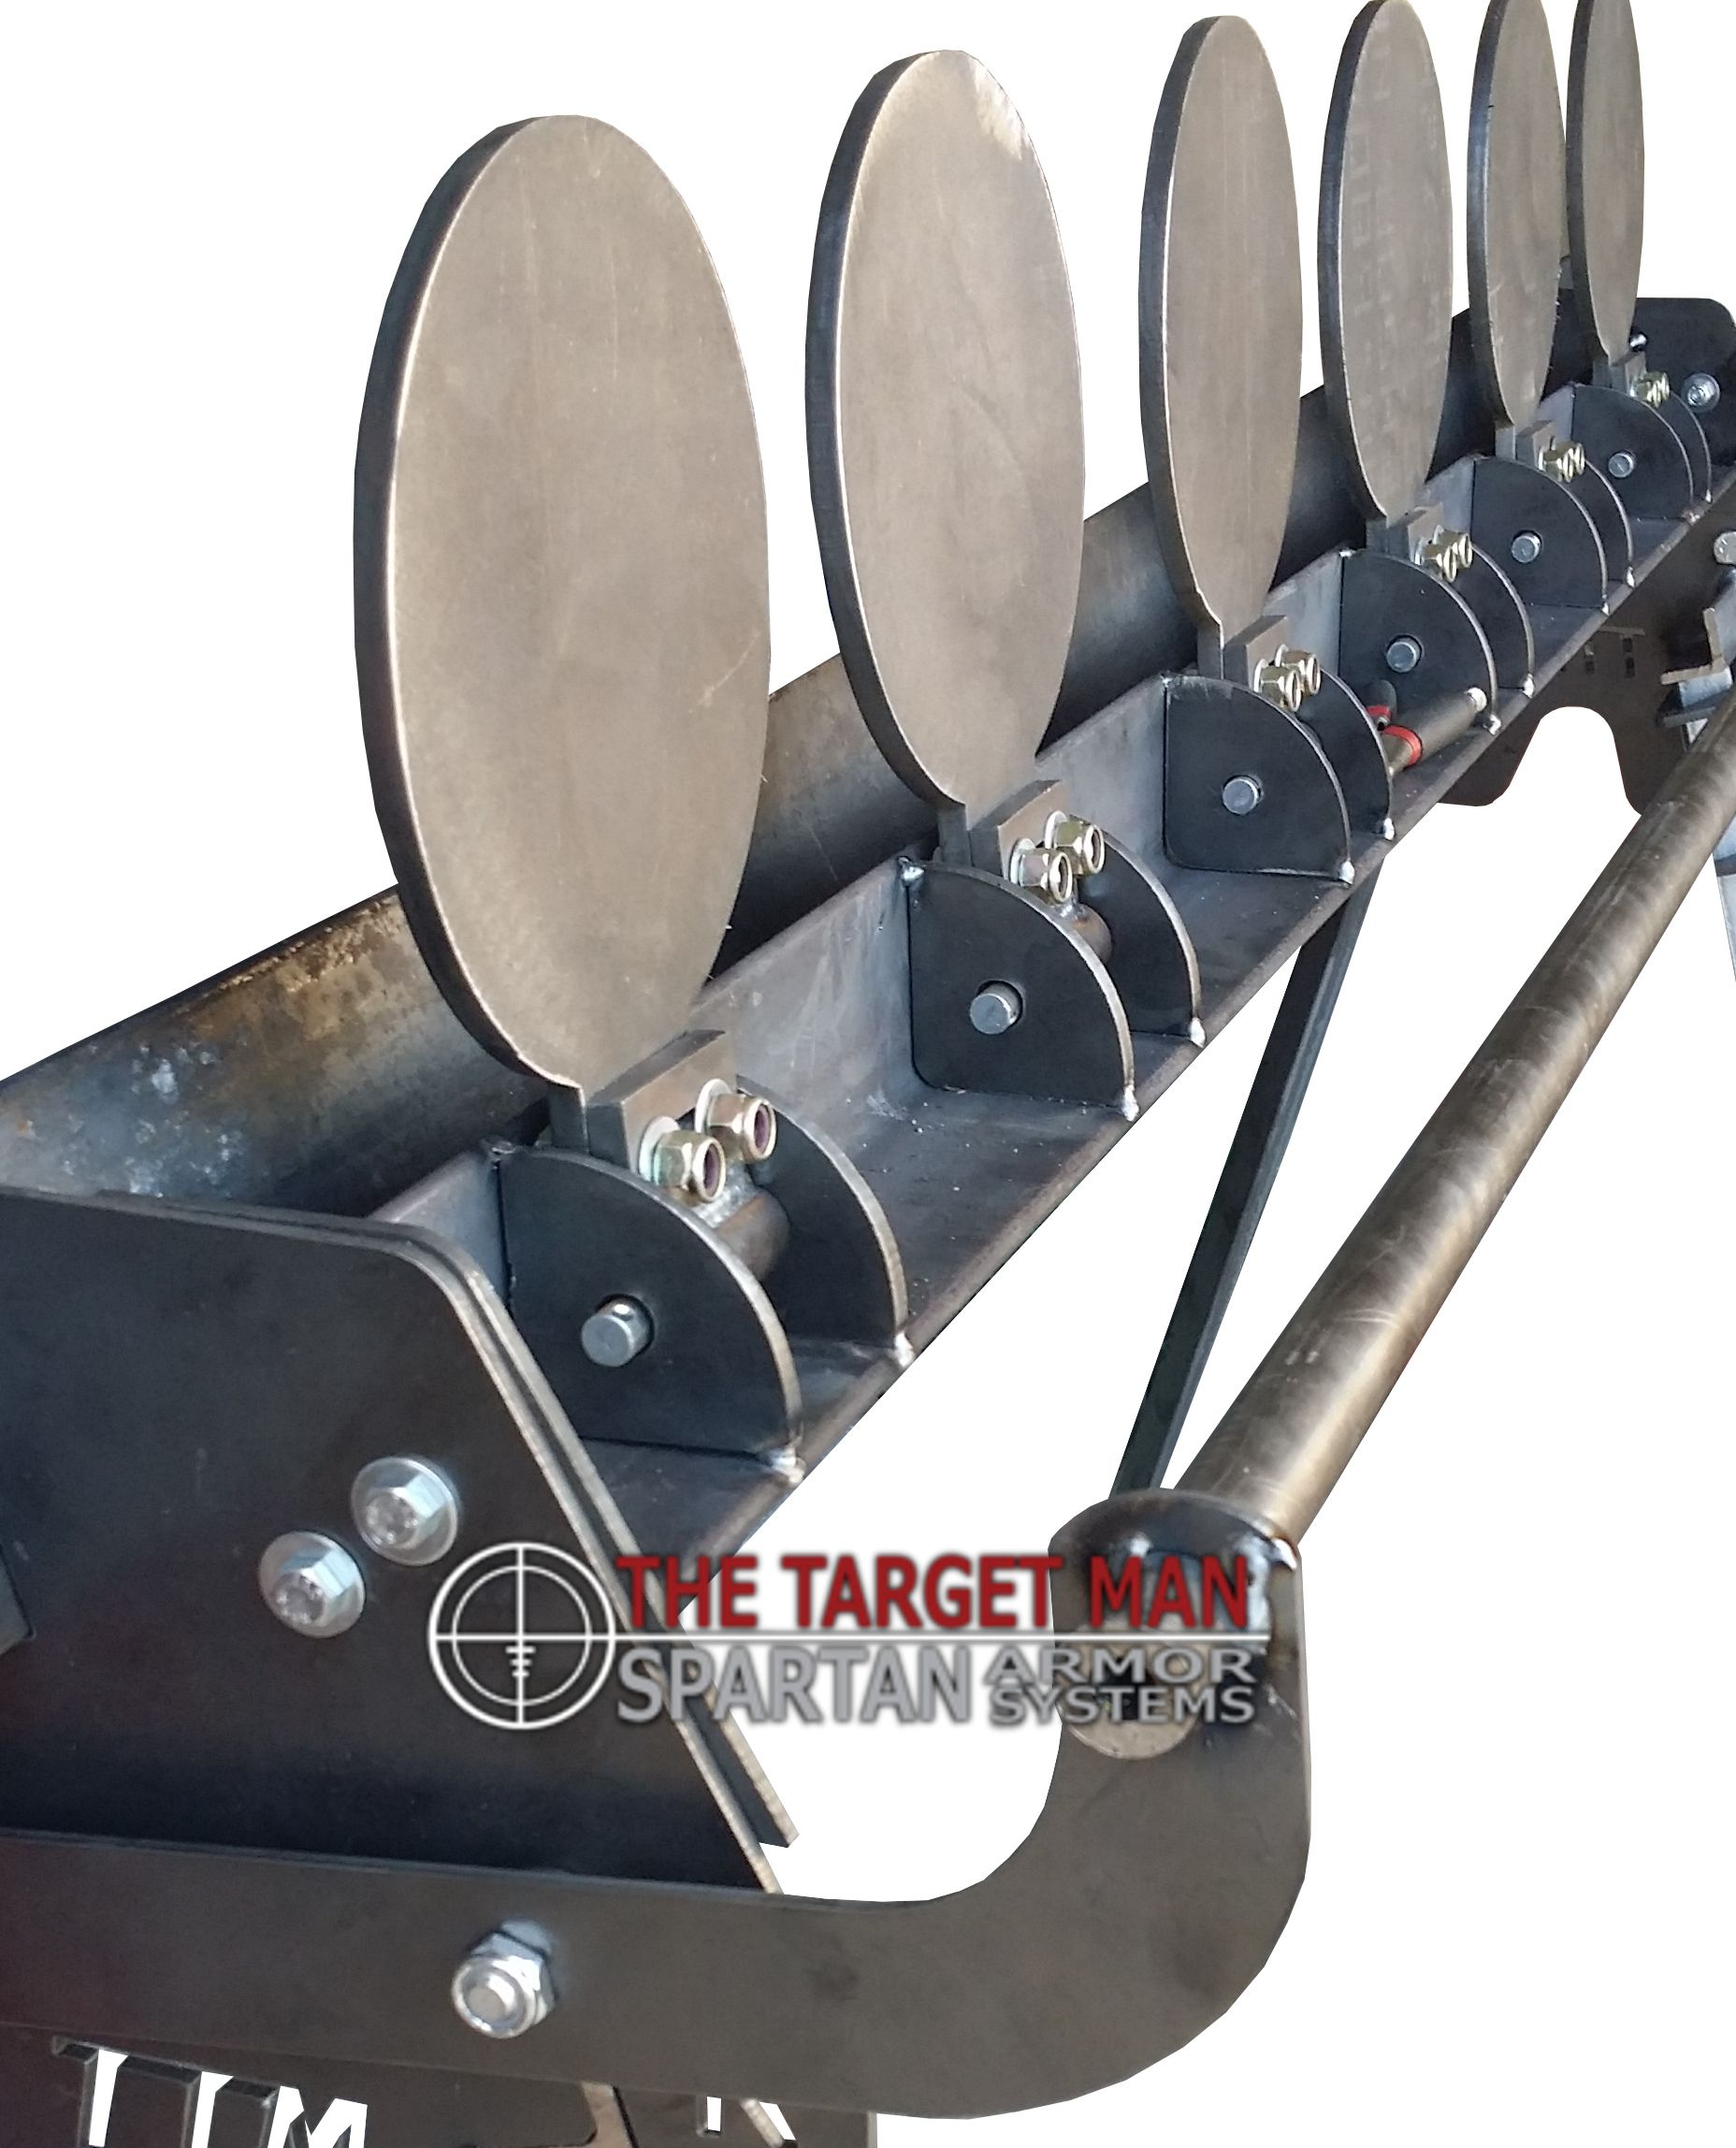 Image Result For Homemade Shooting Targets Trouble Old House Electrical Wiring Pirate4x4com 4x4